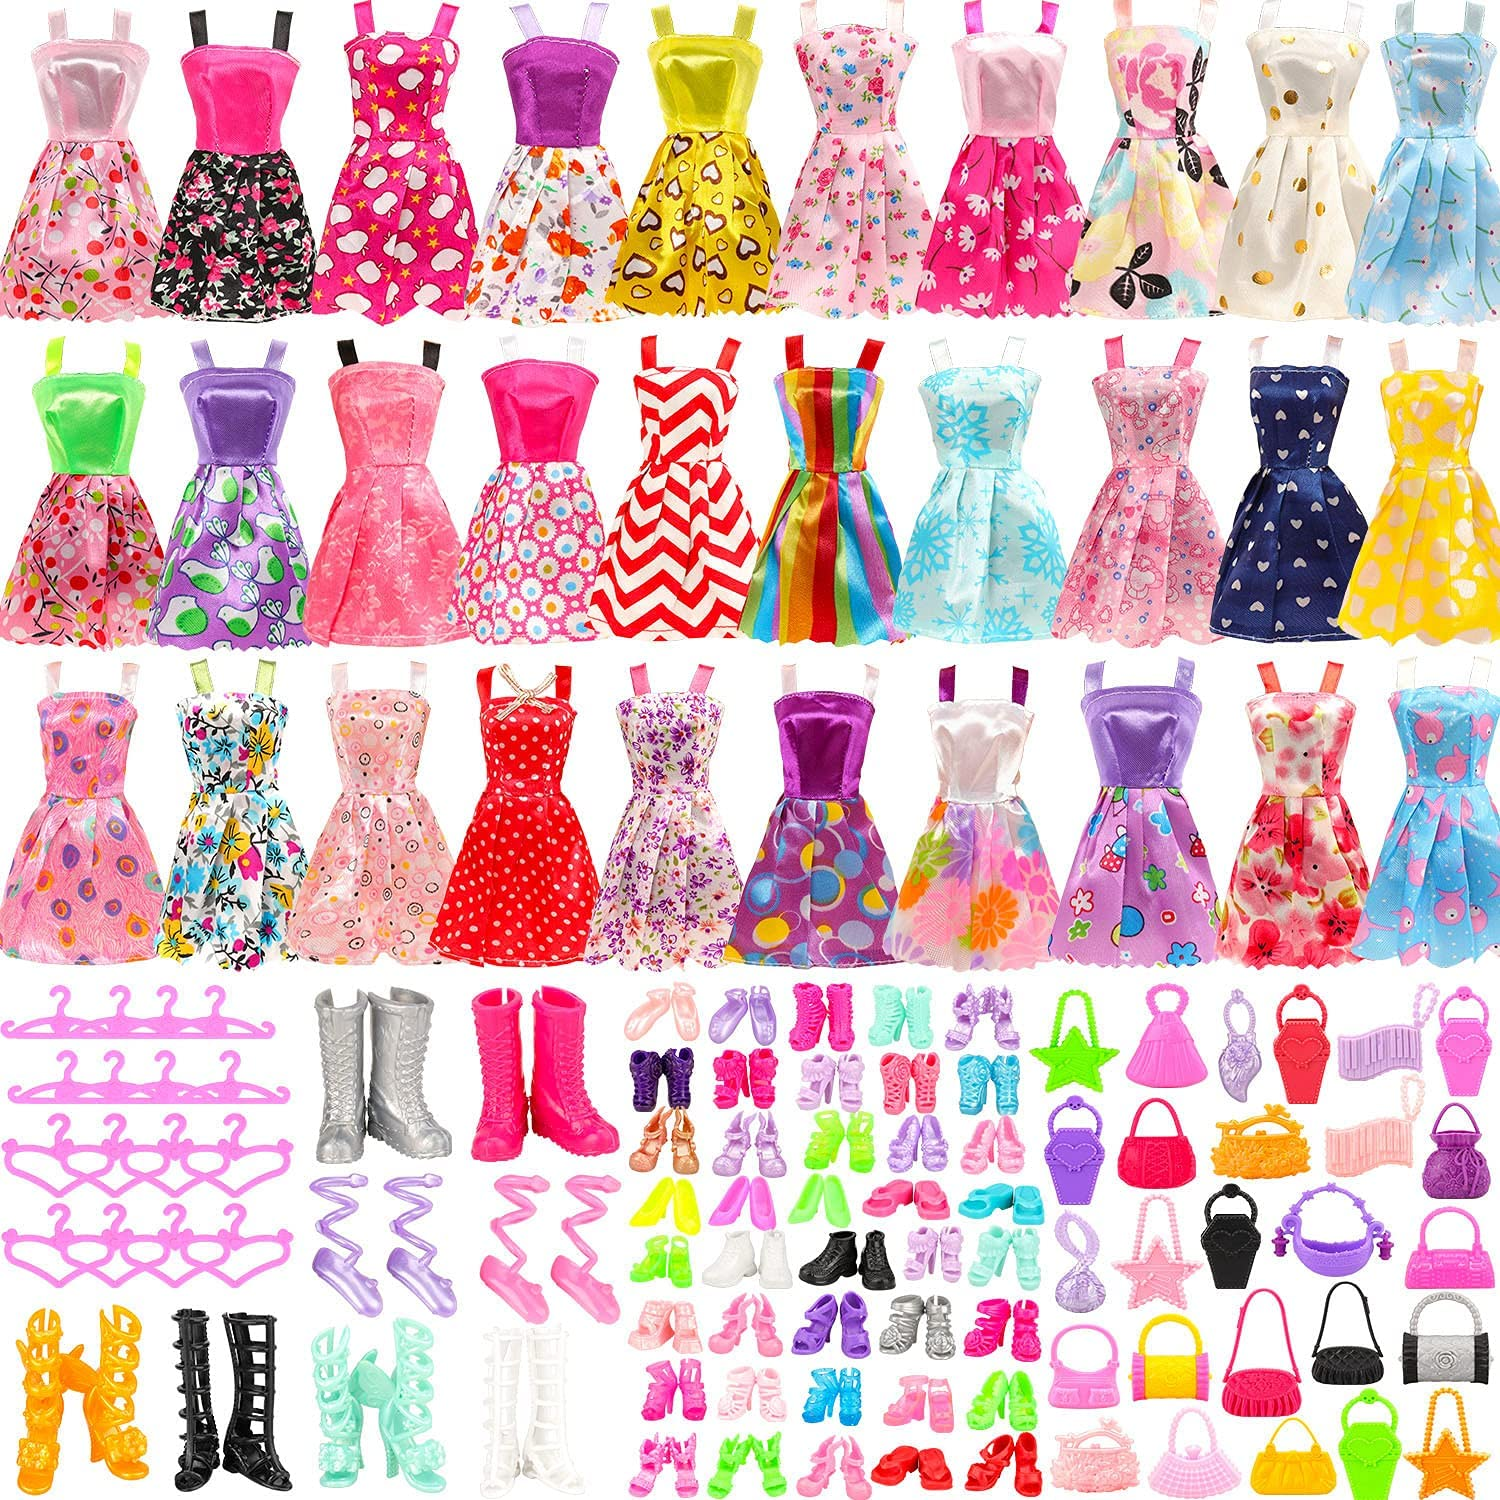 Max 78% OFF Funlight 105 PCS Girl Doll and Alternative dealer Including Clothes Accessories 20